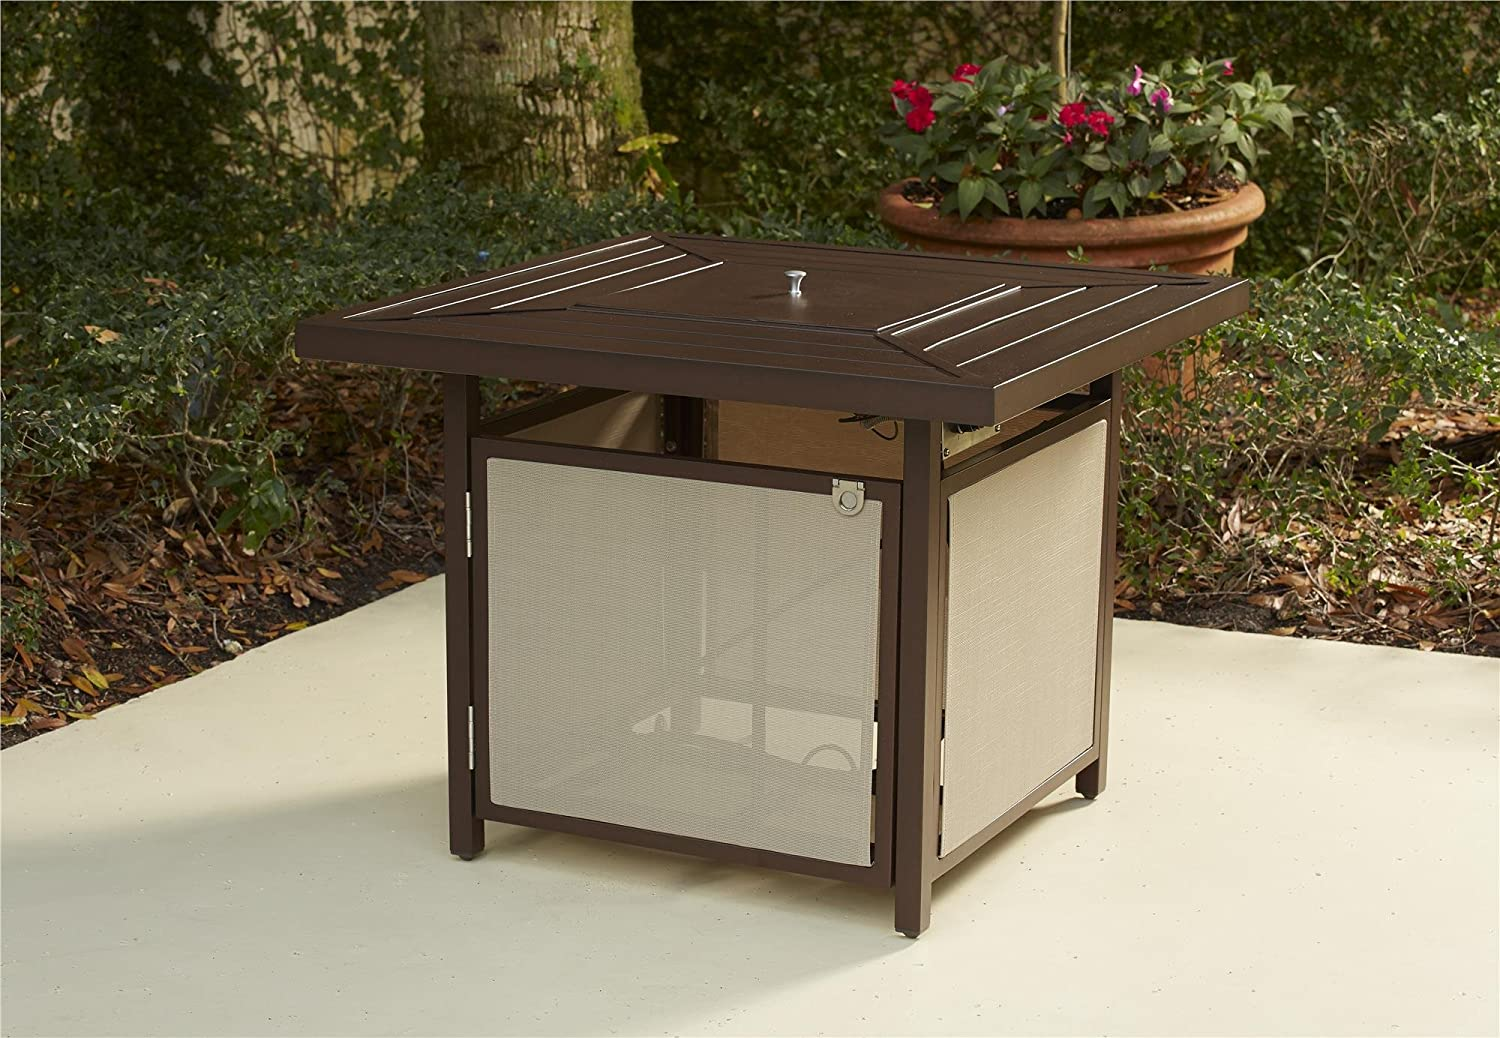 B077YDWY24 COSCO 88651SBTE Outdoor Living Stone Lake Patio Propane Fire Pit Table, Brown 814oTfpGDdL.SL1500_